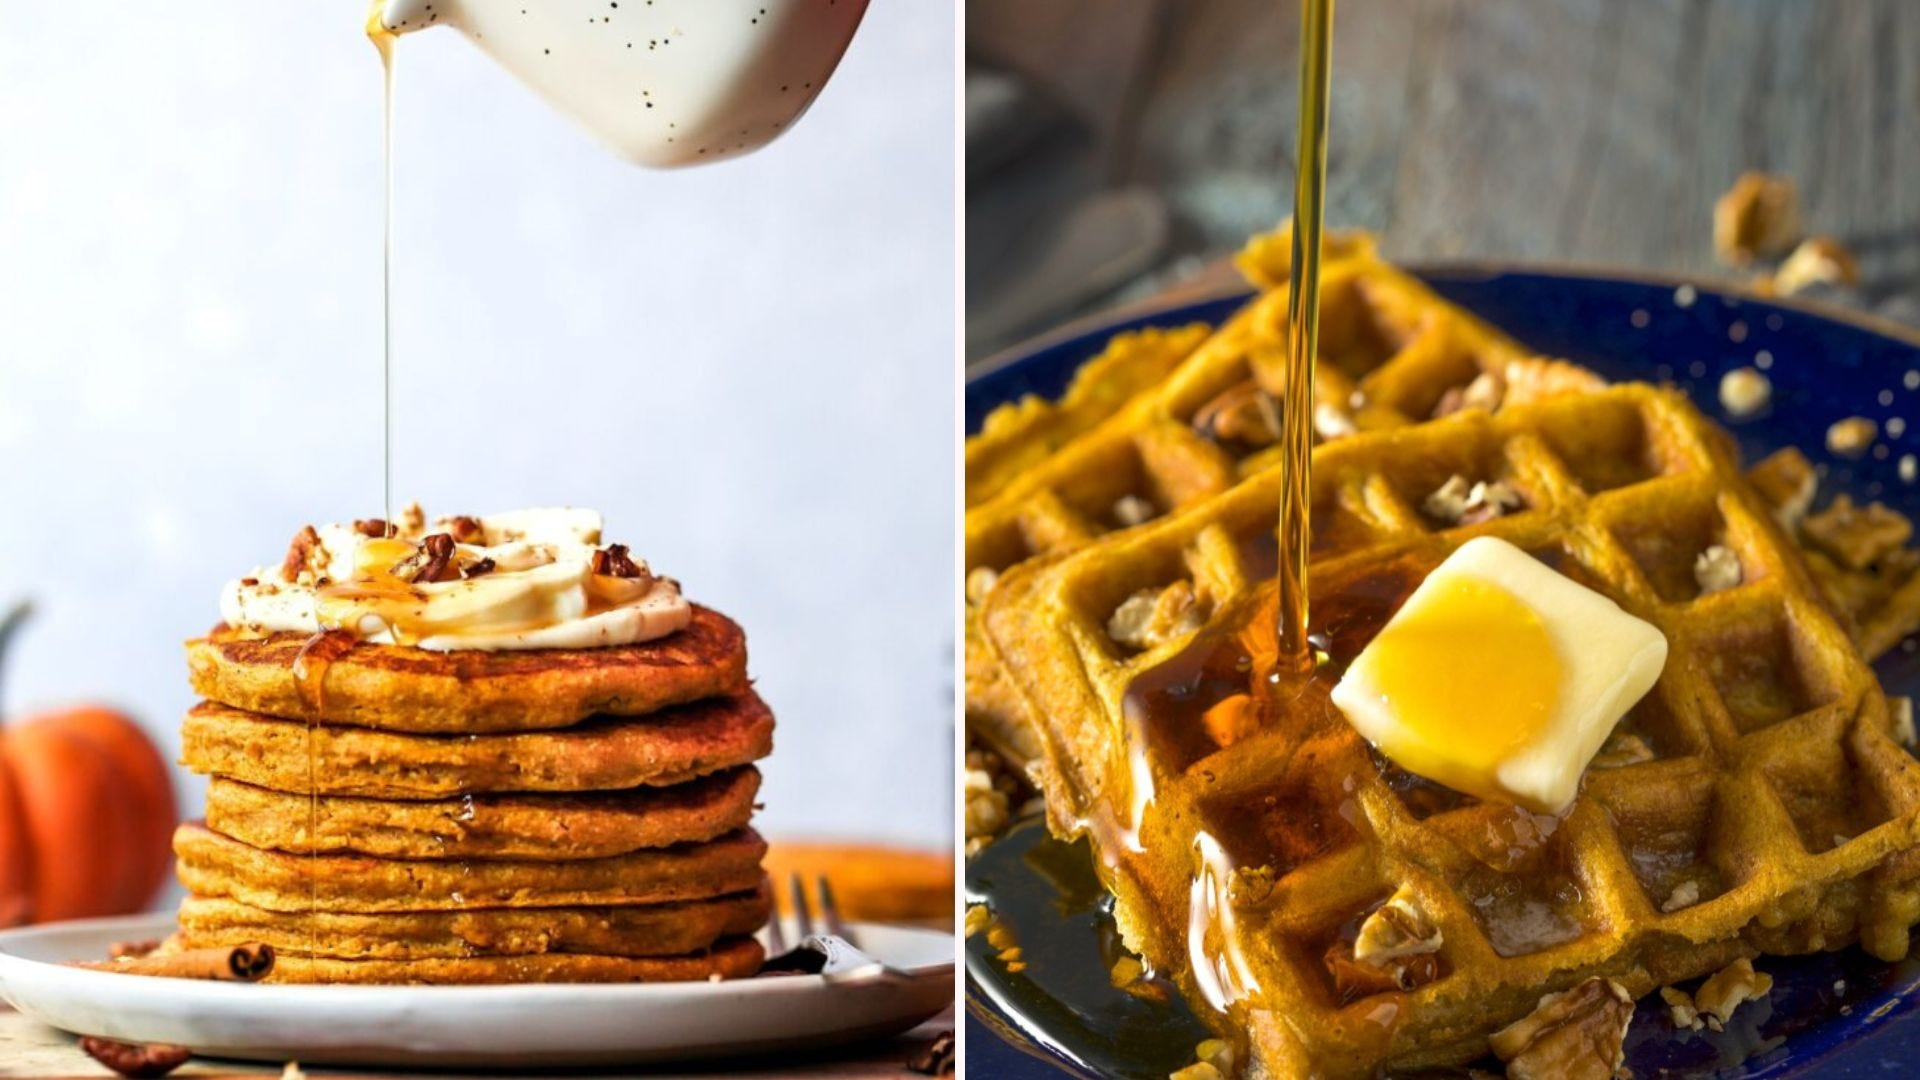 A stack of pancakes; a plate of two waffles